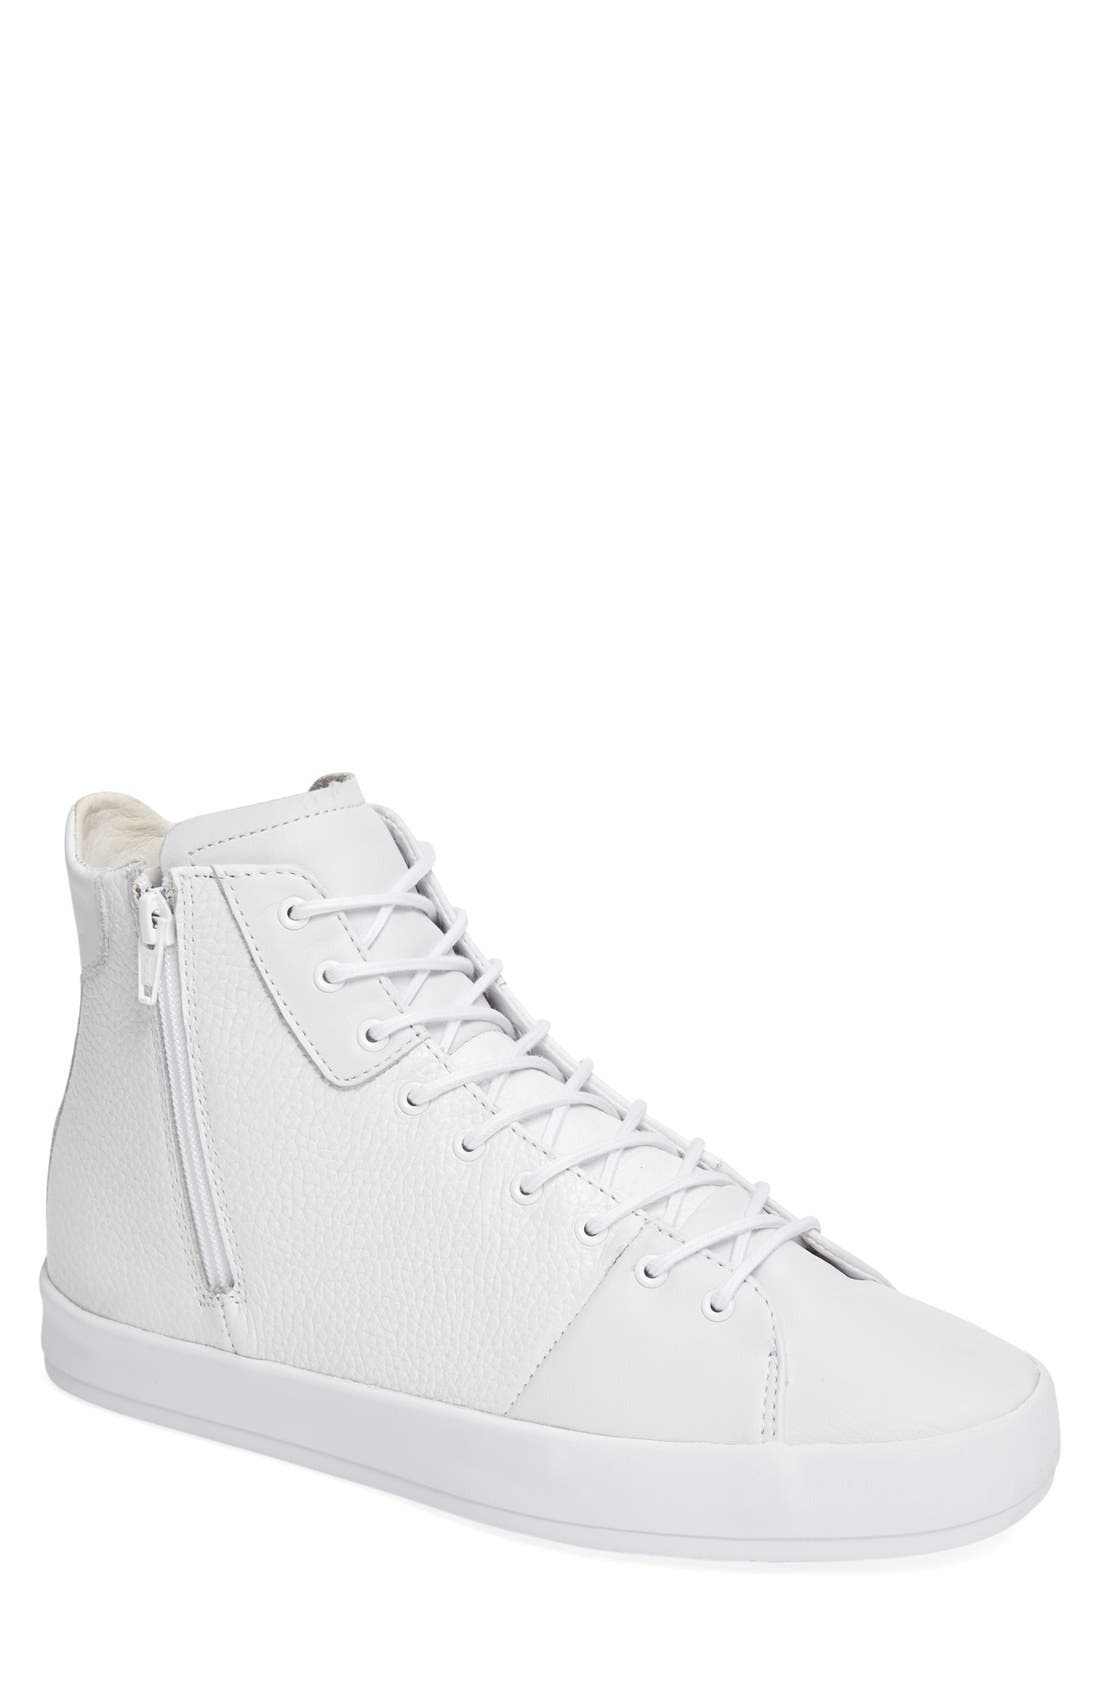 Creative Recreation Carda Sneaker (Men)